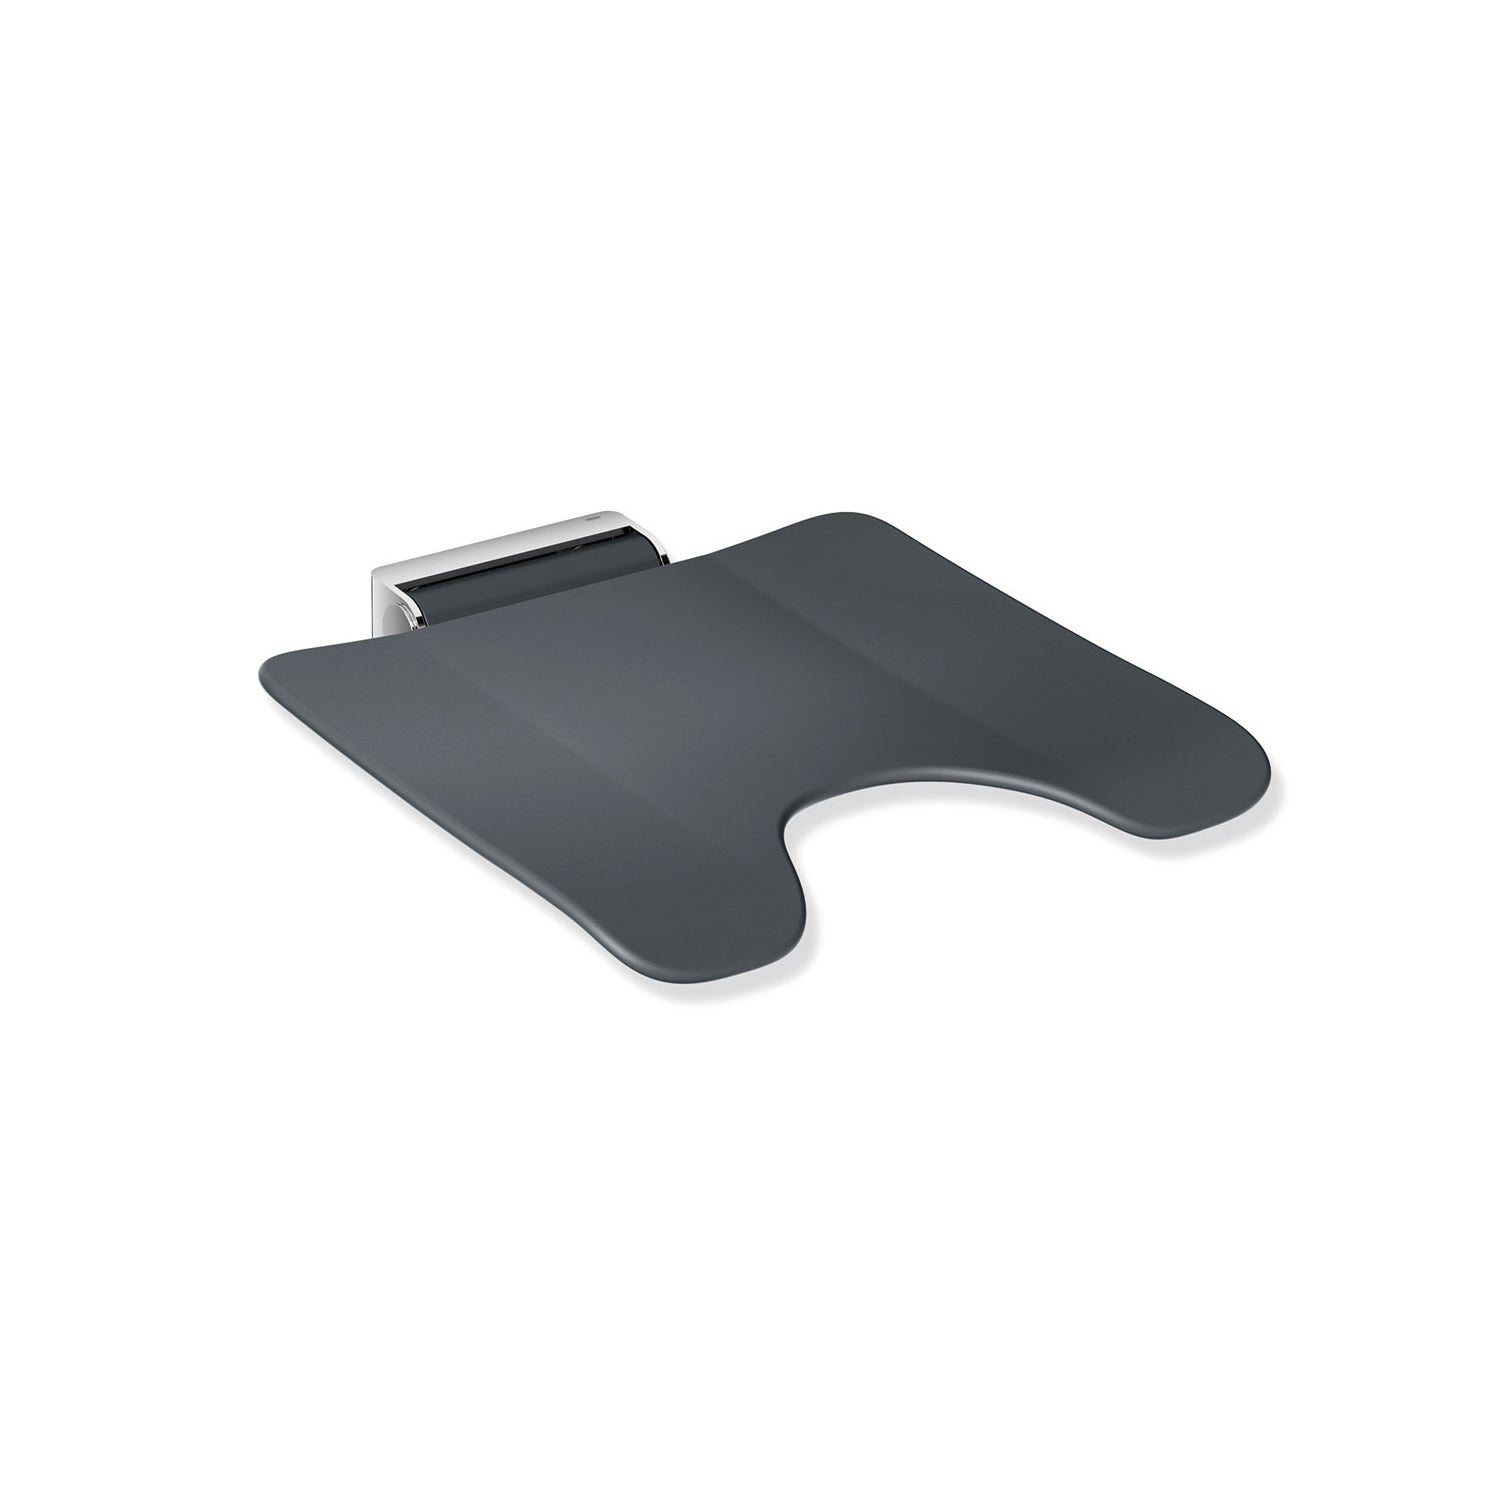 Freestyle Removable Shower Seat with a cut-out in an anthracite grey seat and chrome bracket on a white background